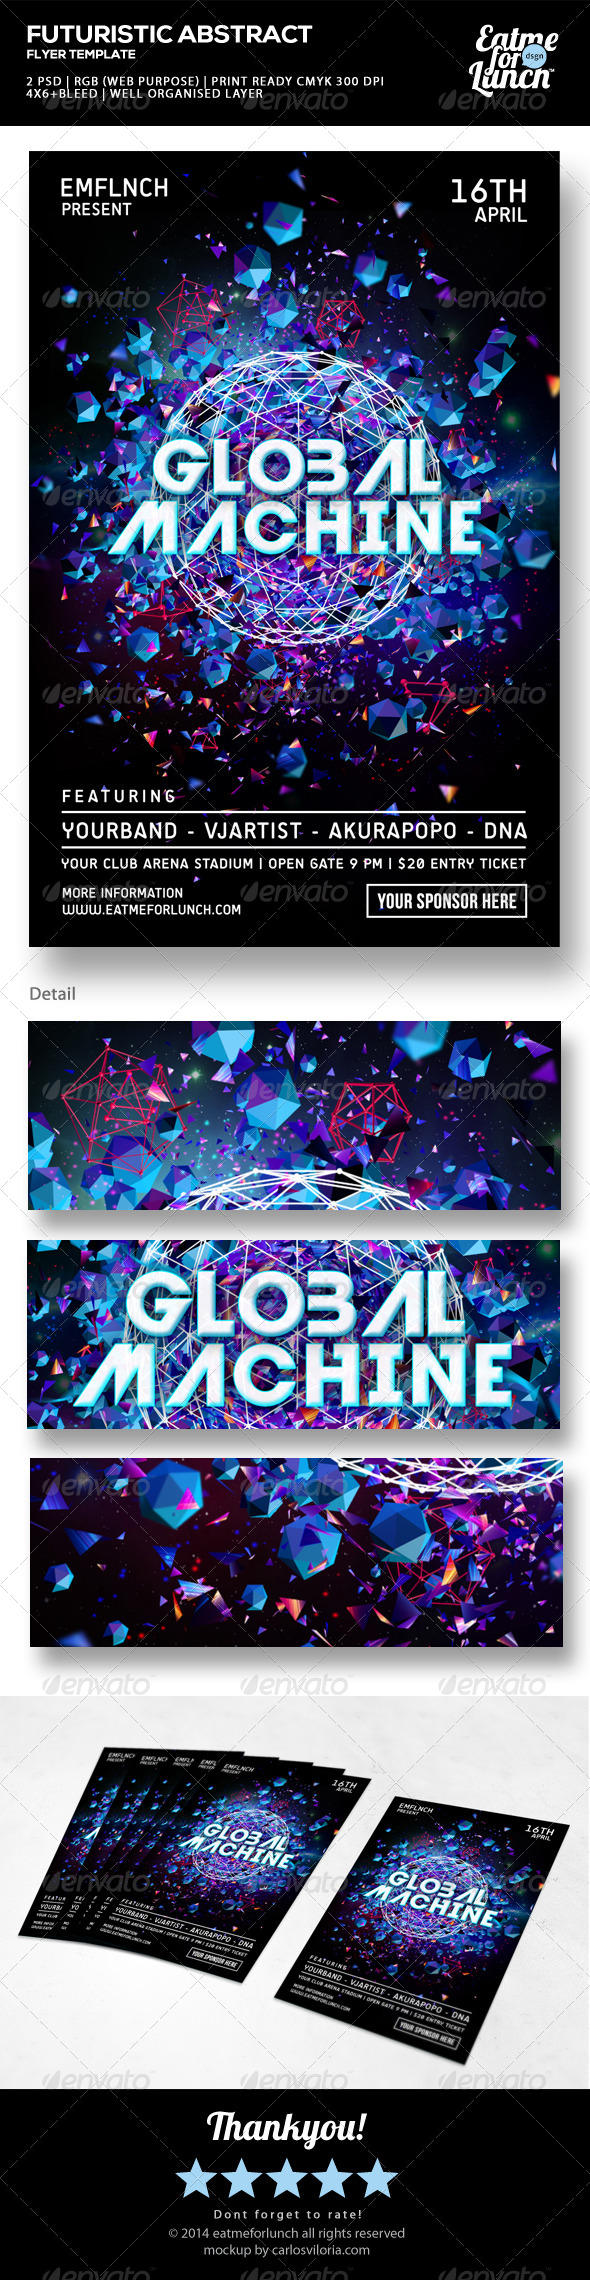 GraphicRiver Futuristic Electronic Music Flyer Global Machine 7504931